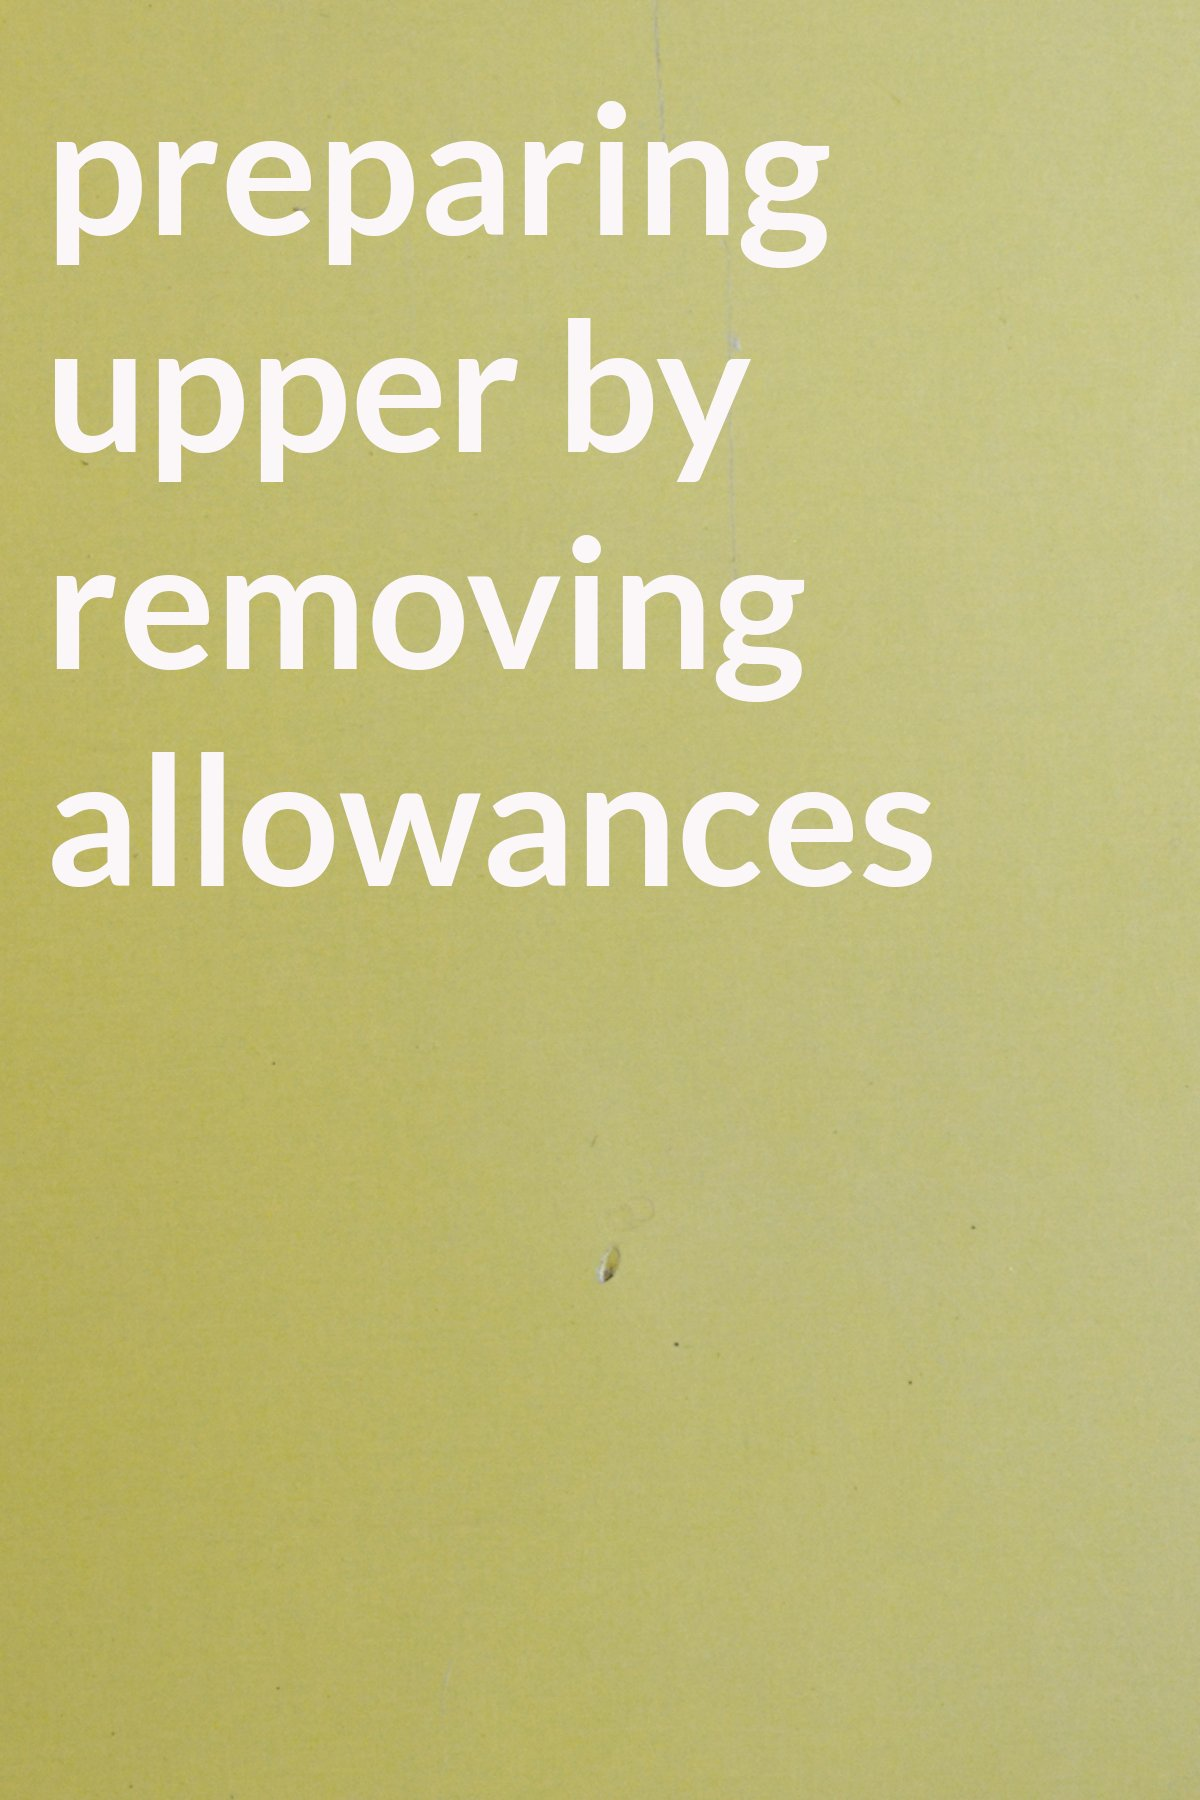 preparing upper by removing allowances